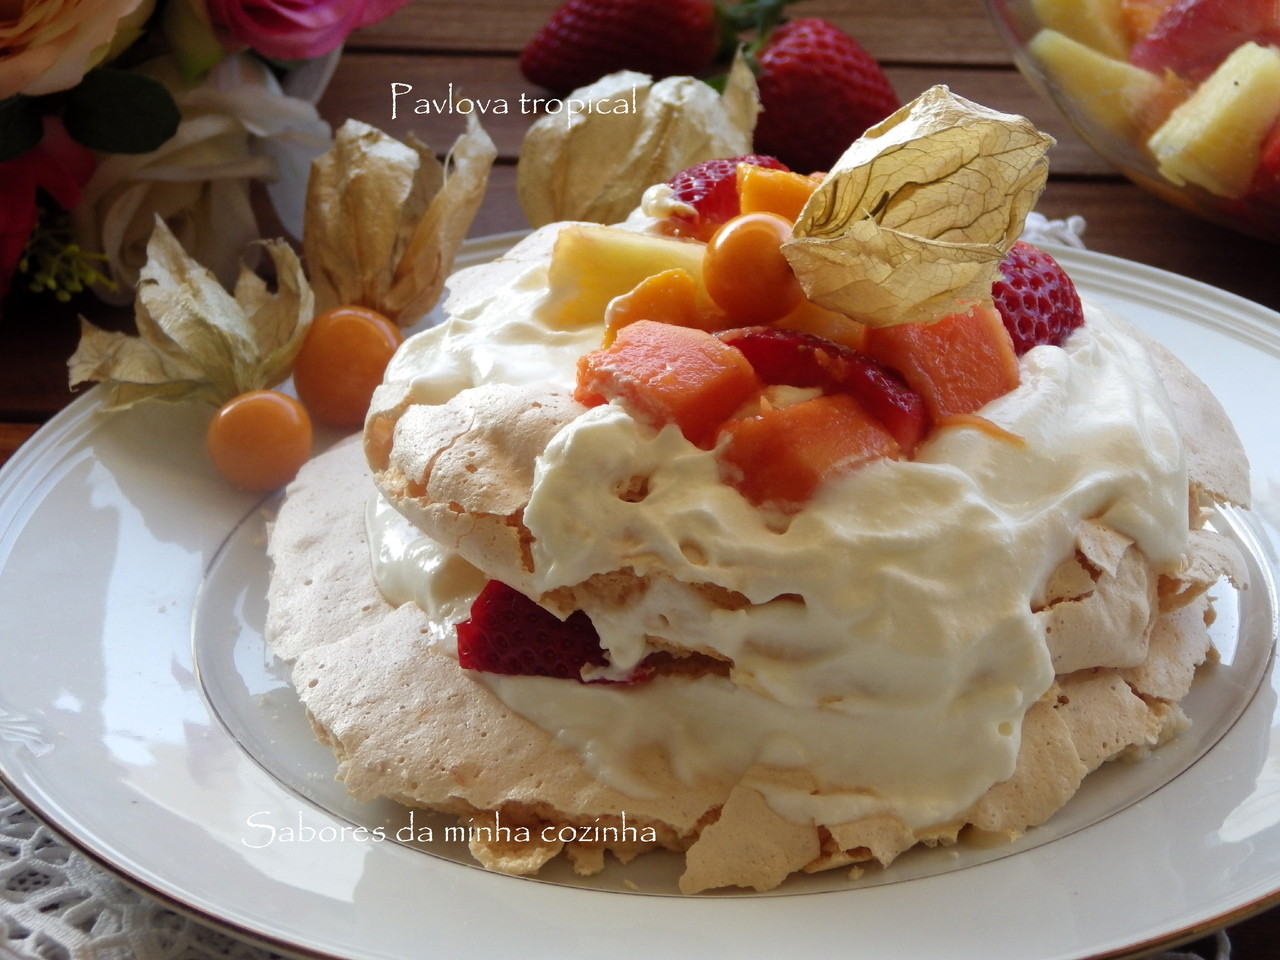 IMGP4679-Pavlova tropical-Blog.JPG